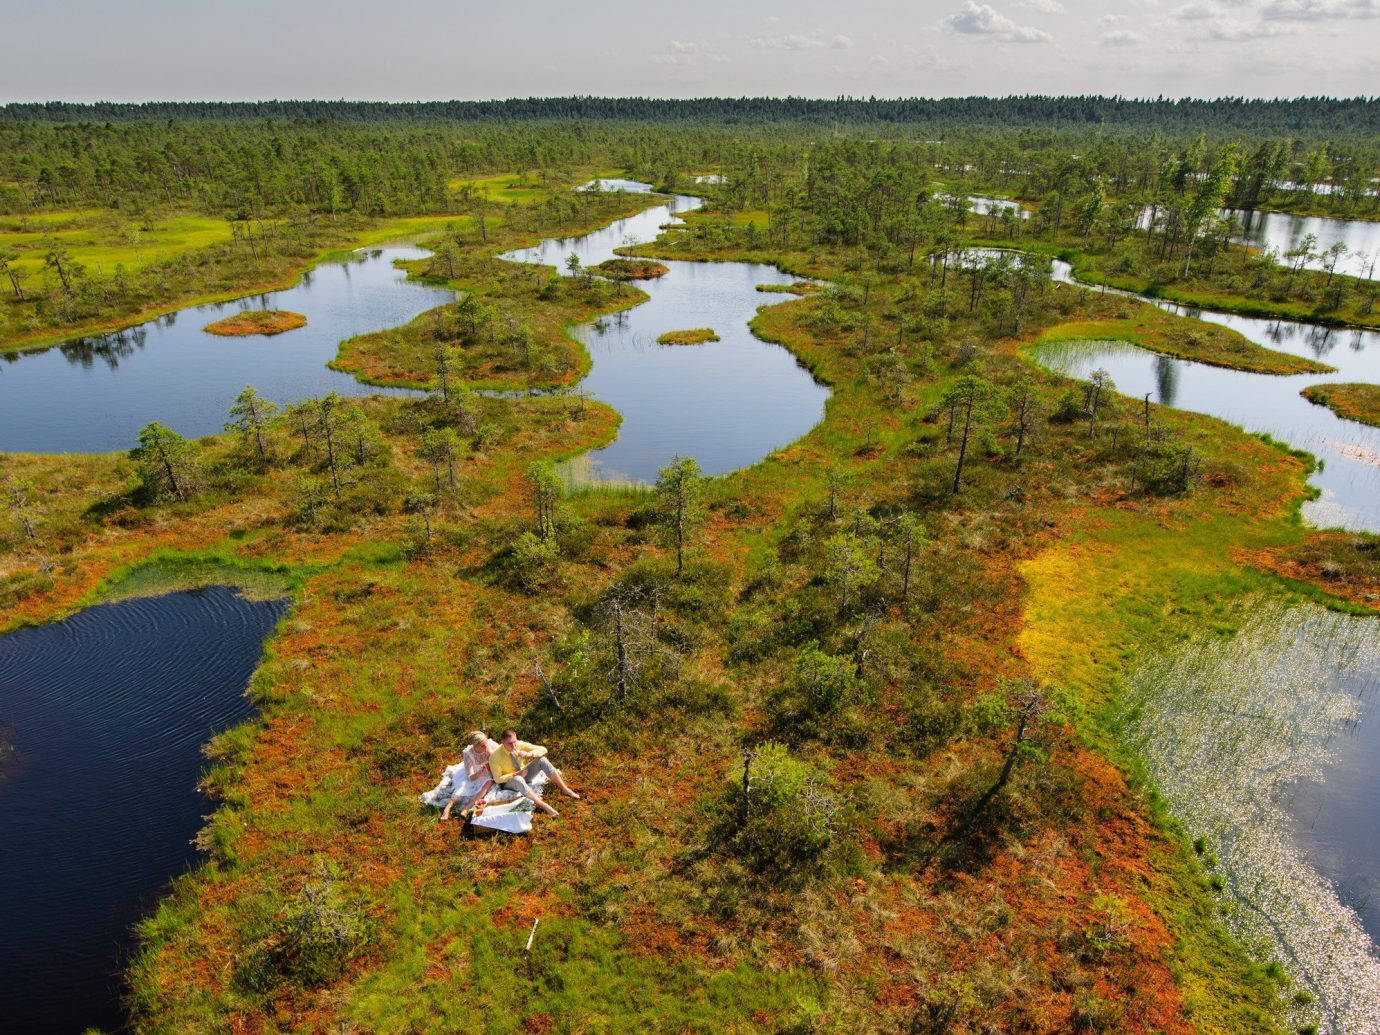 Offbeat grass water outdoor sky River habitat aerial photography wetland geographical feature Nature reflection natural environment wilderness ecosystem plain marsh tundra Lake floodplain green bog reservoir loch estuary pond biome swamp plateau grassy lush surrounded hillside land traveling